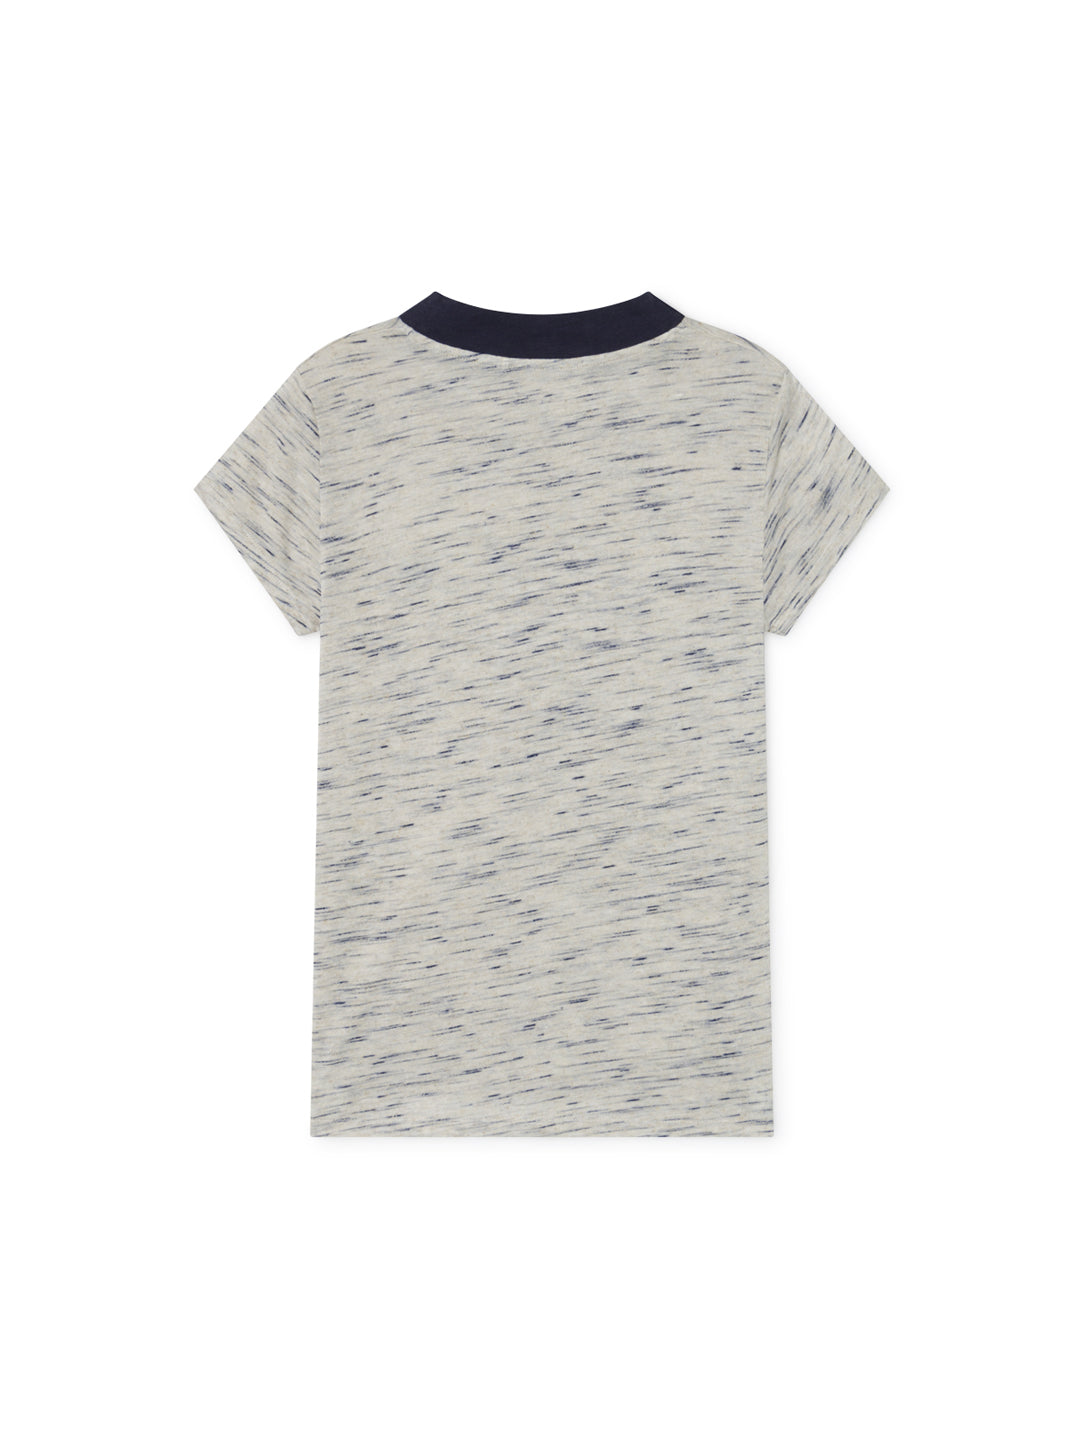 TWOTHIRDS Womens Tee: Oyarvide - Stone/Navy back